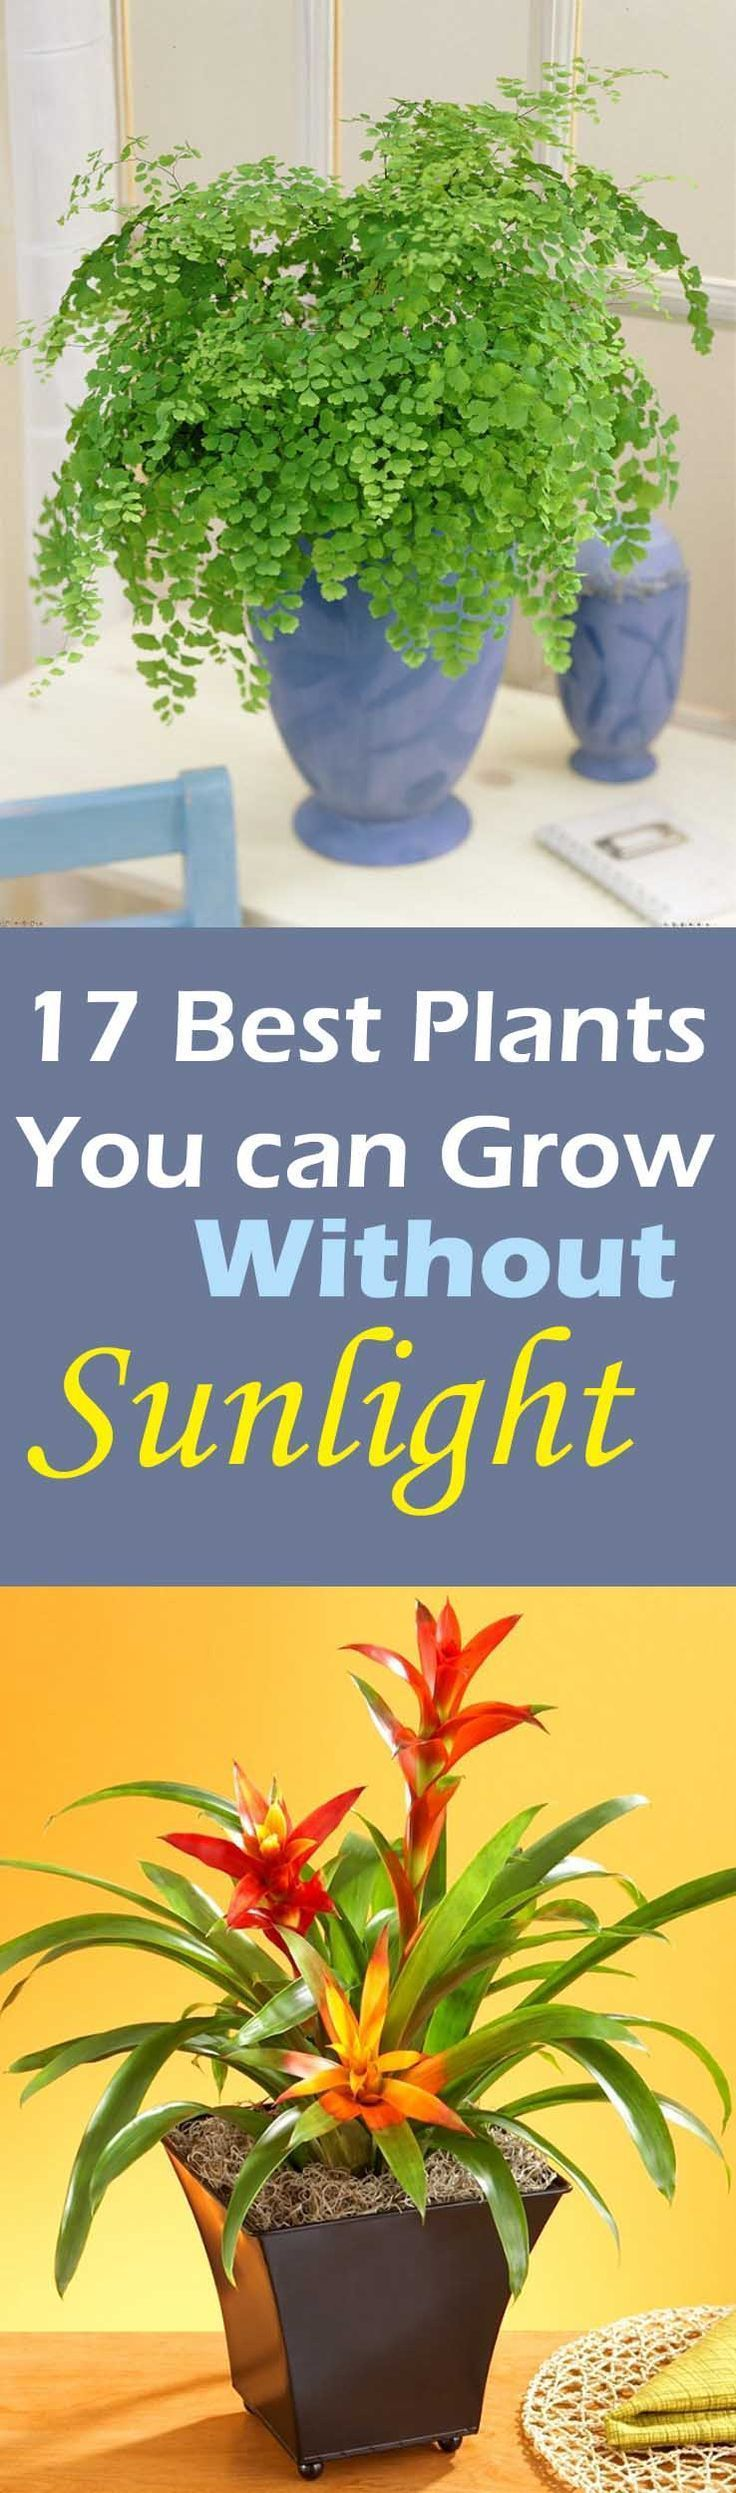 There Are Low Light Plants That Grow Without Sunlight, They Need Indirect  Exposure, Some Even Thrive In Fluorescent Light And Here In This Article  Weu0027ve ...